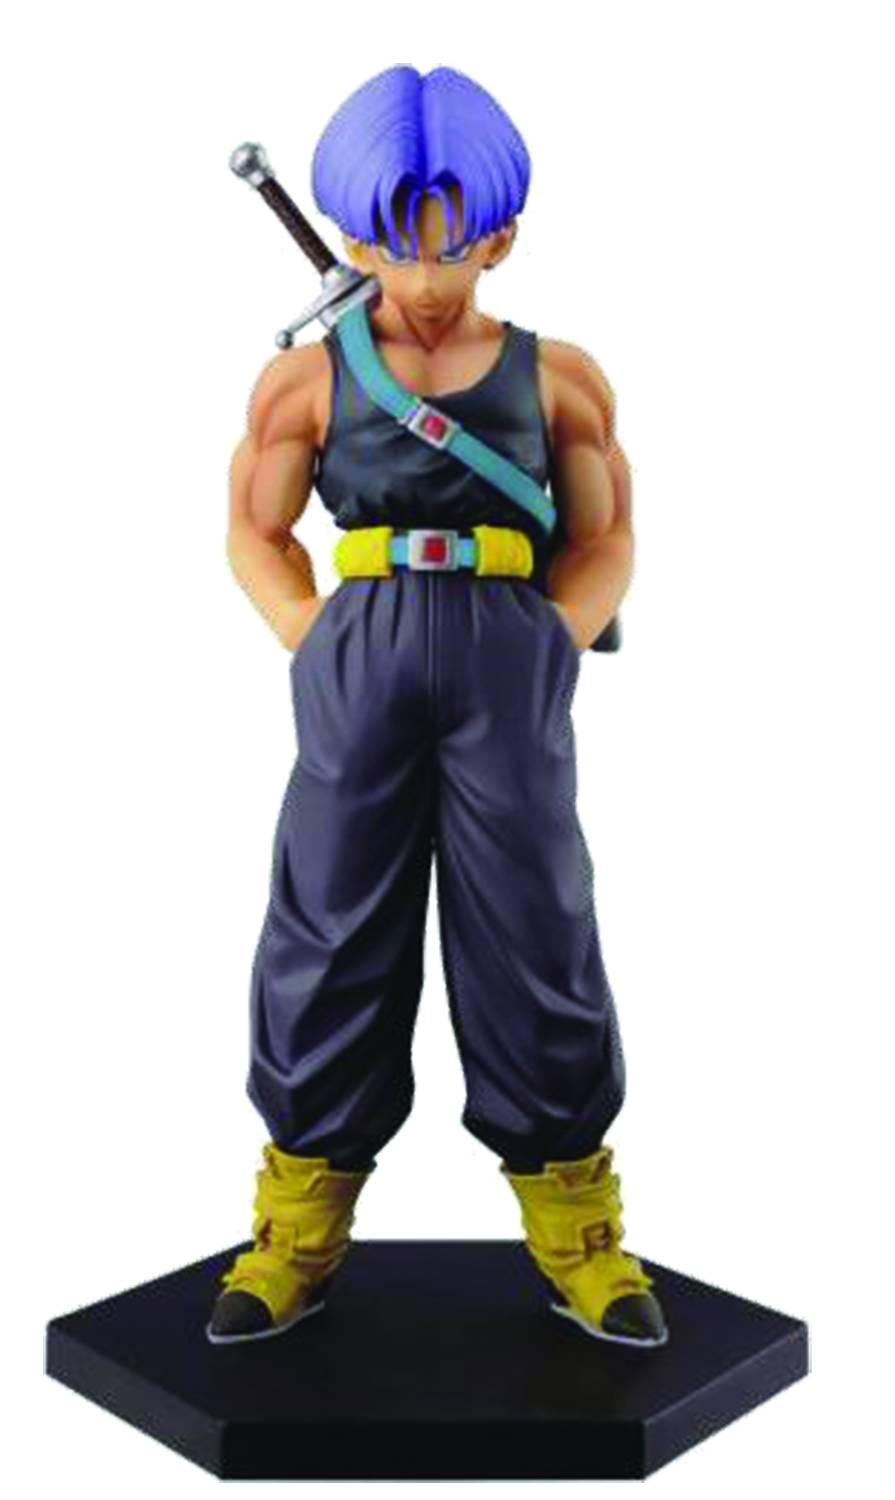 Dragon Ball Z Chozousyu Volume 2 Trunks Figure